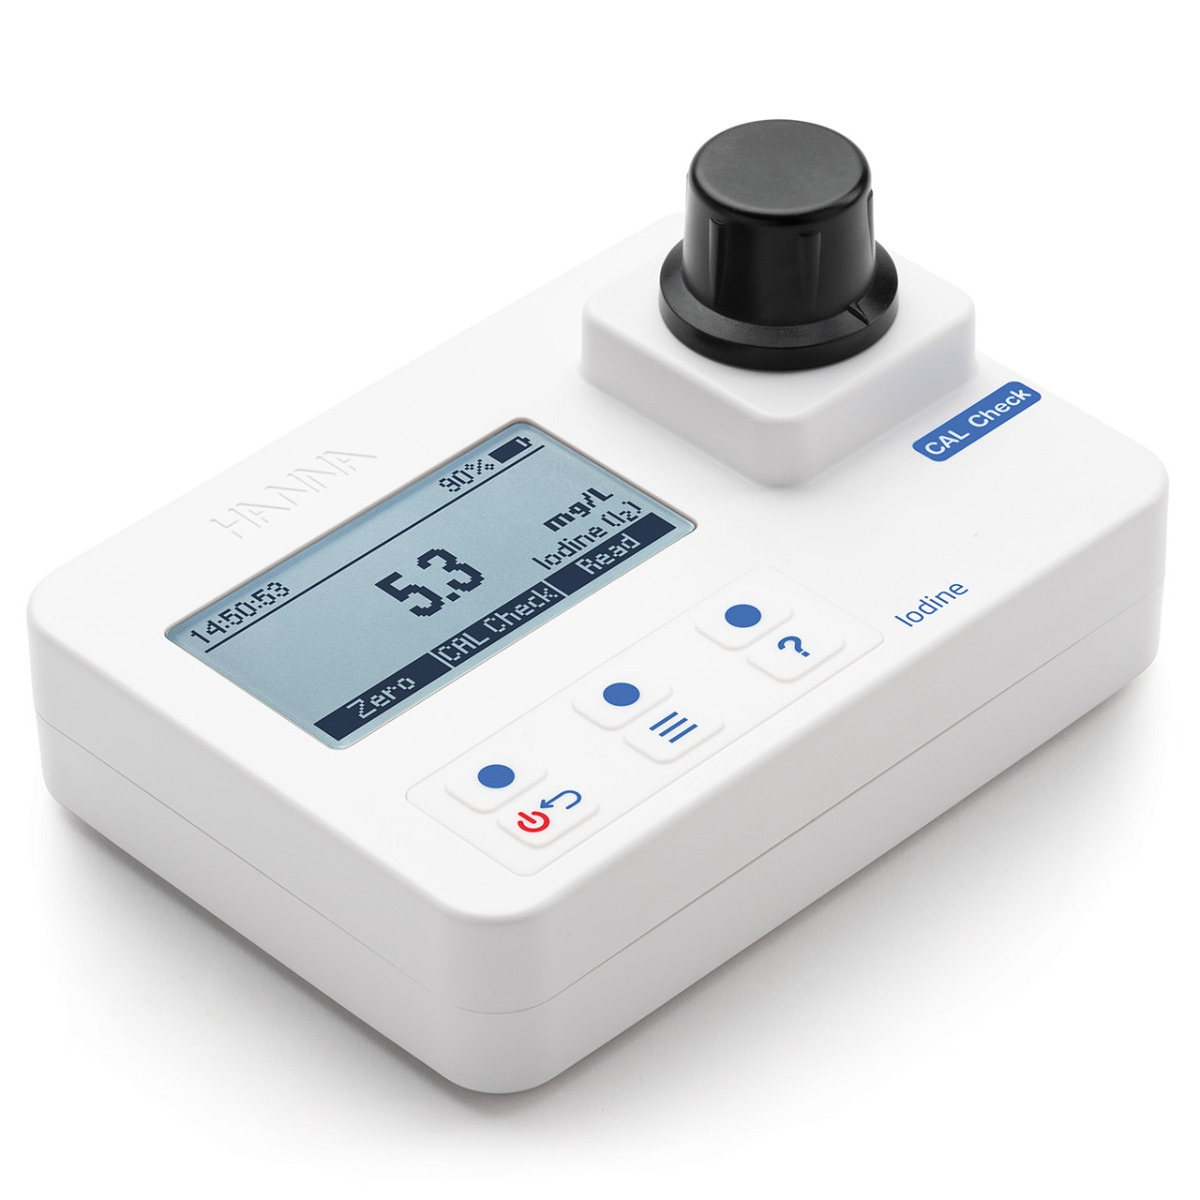 Iodine Portable Photometer with CAL Check - HI97718